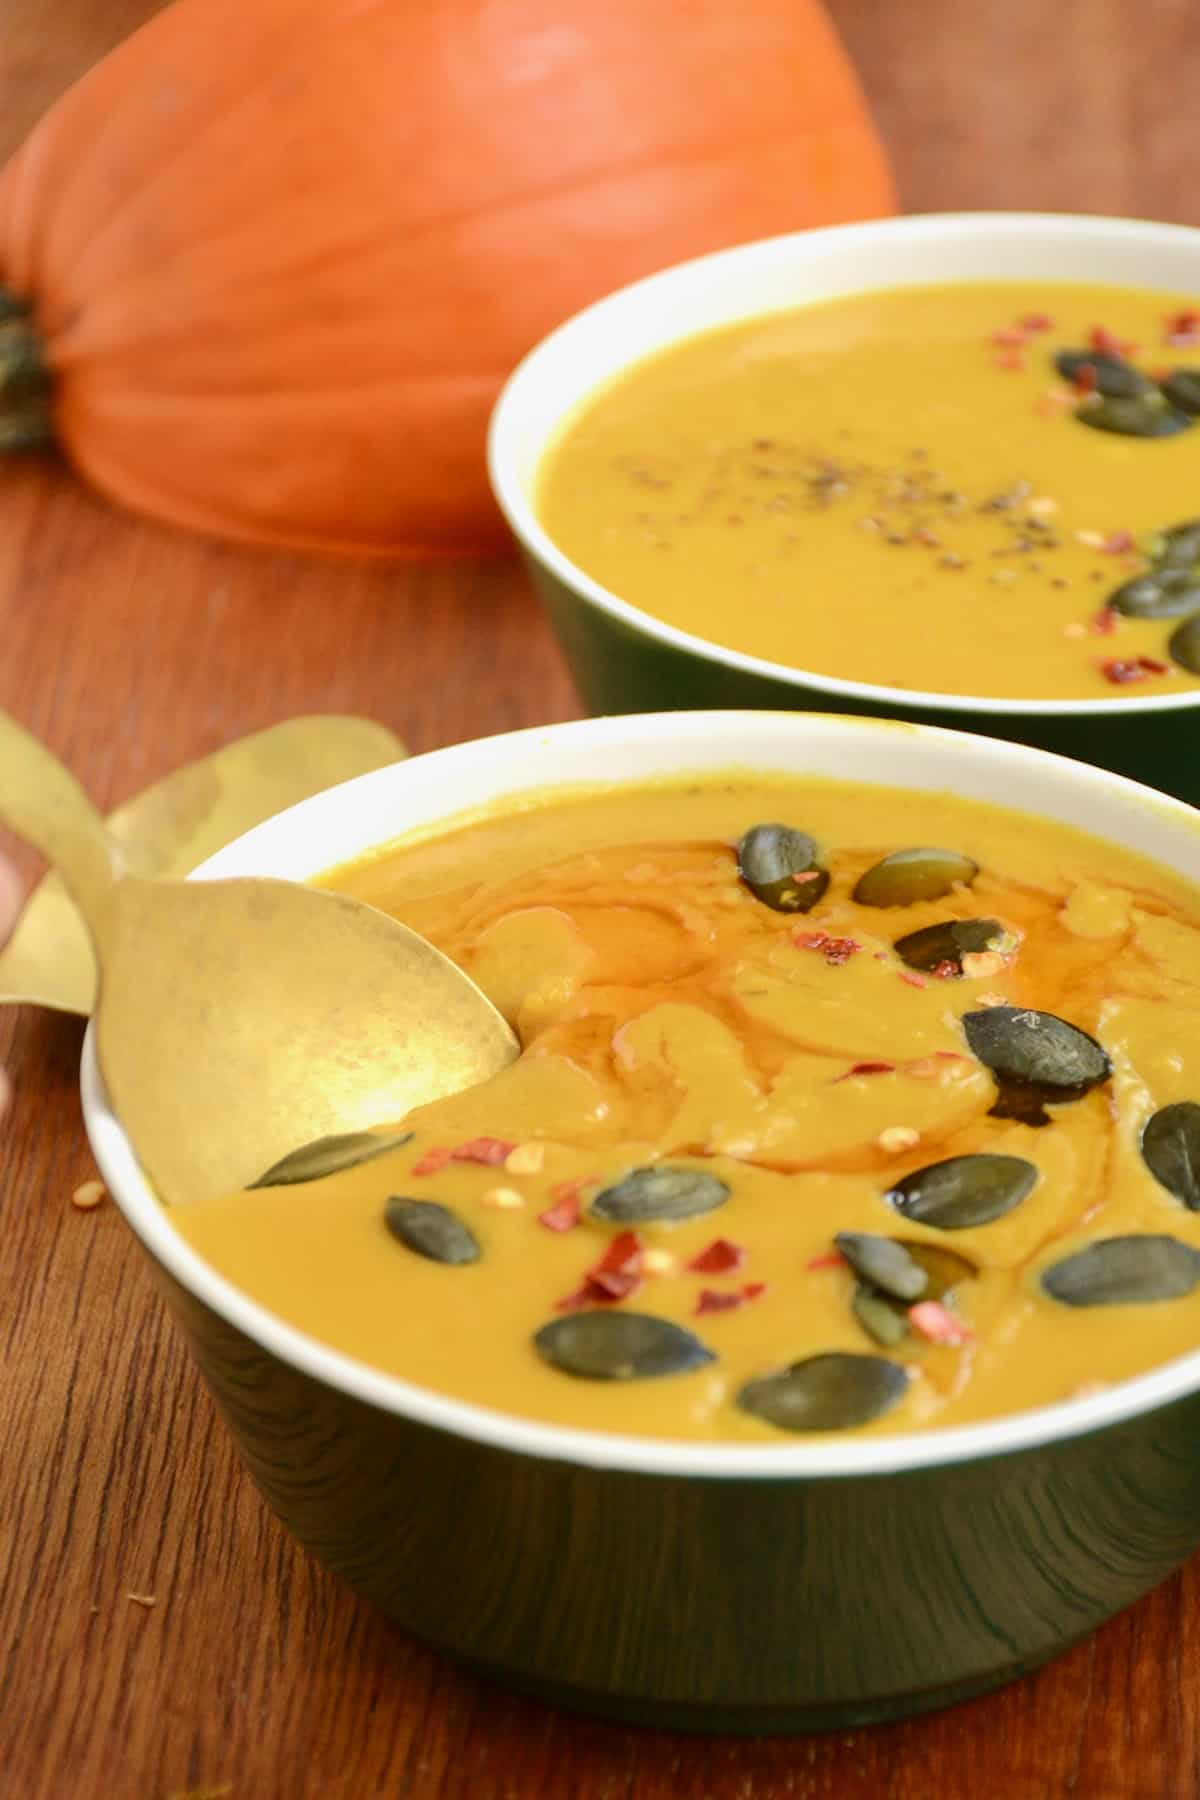 Dipping a spoon into the thick lentil pumpkin soup.